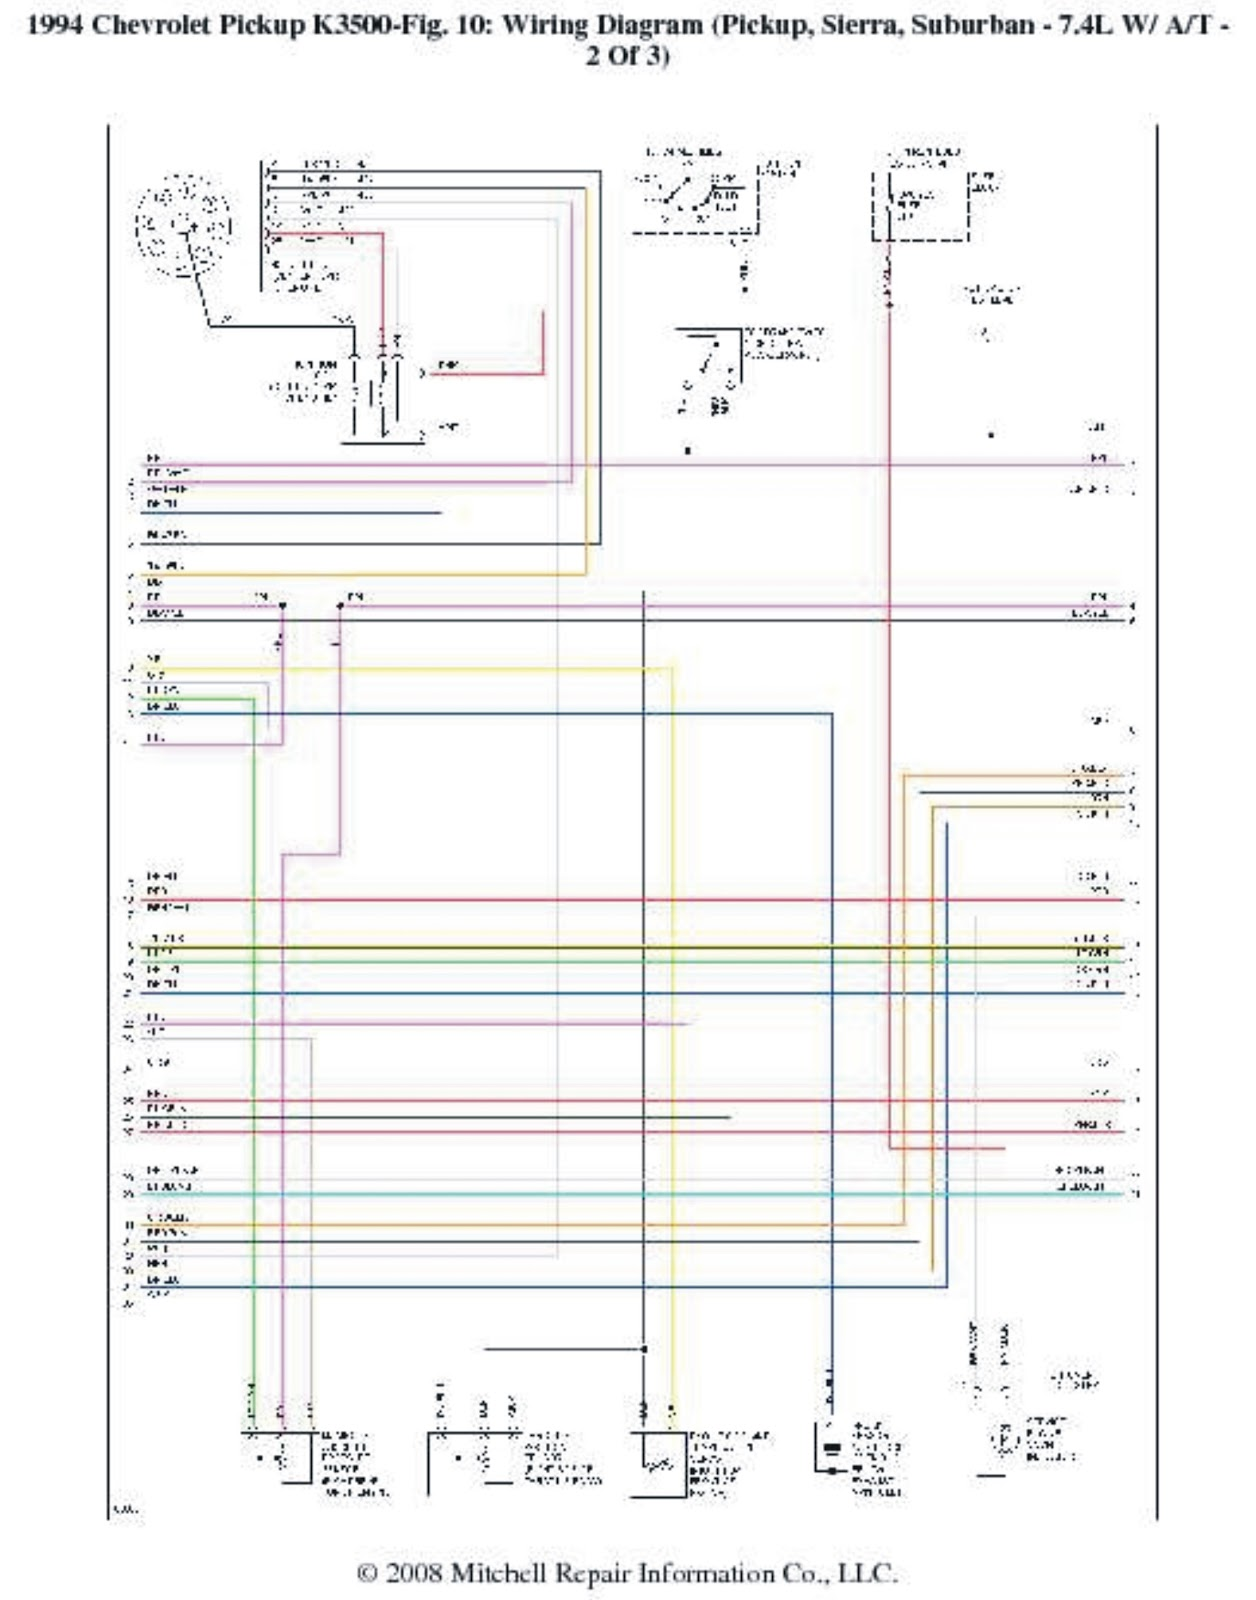 Chevy Truck Tail Light Wiring Diagram Chevy S10 Tail Light Wiring